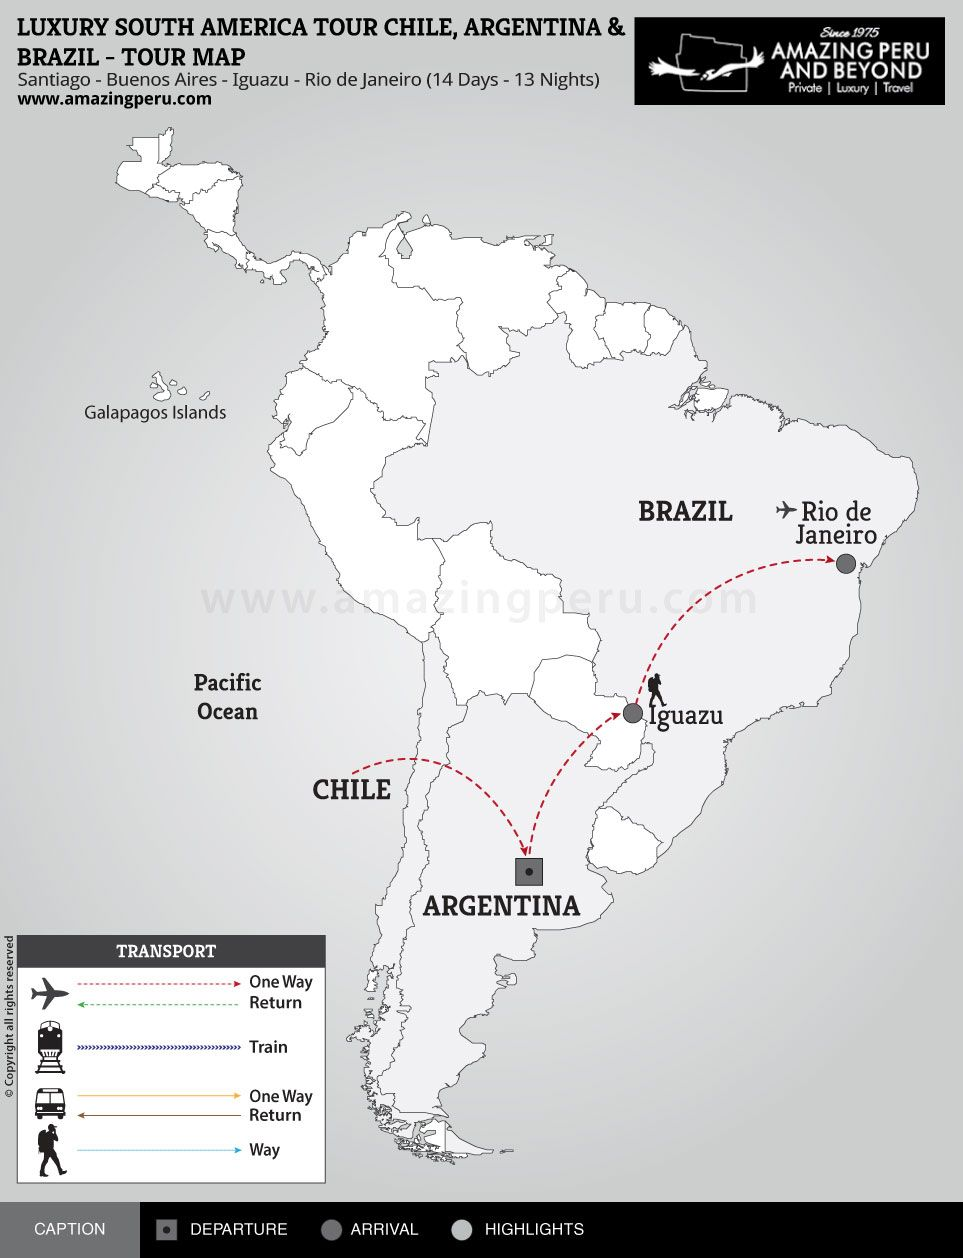 Luxury South America Tour - 14 days / 13 nights.